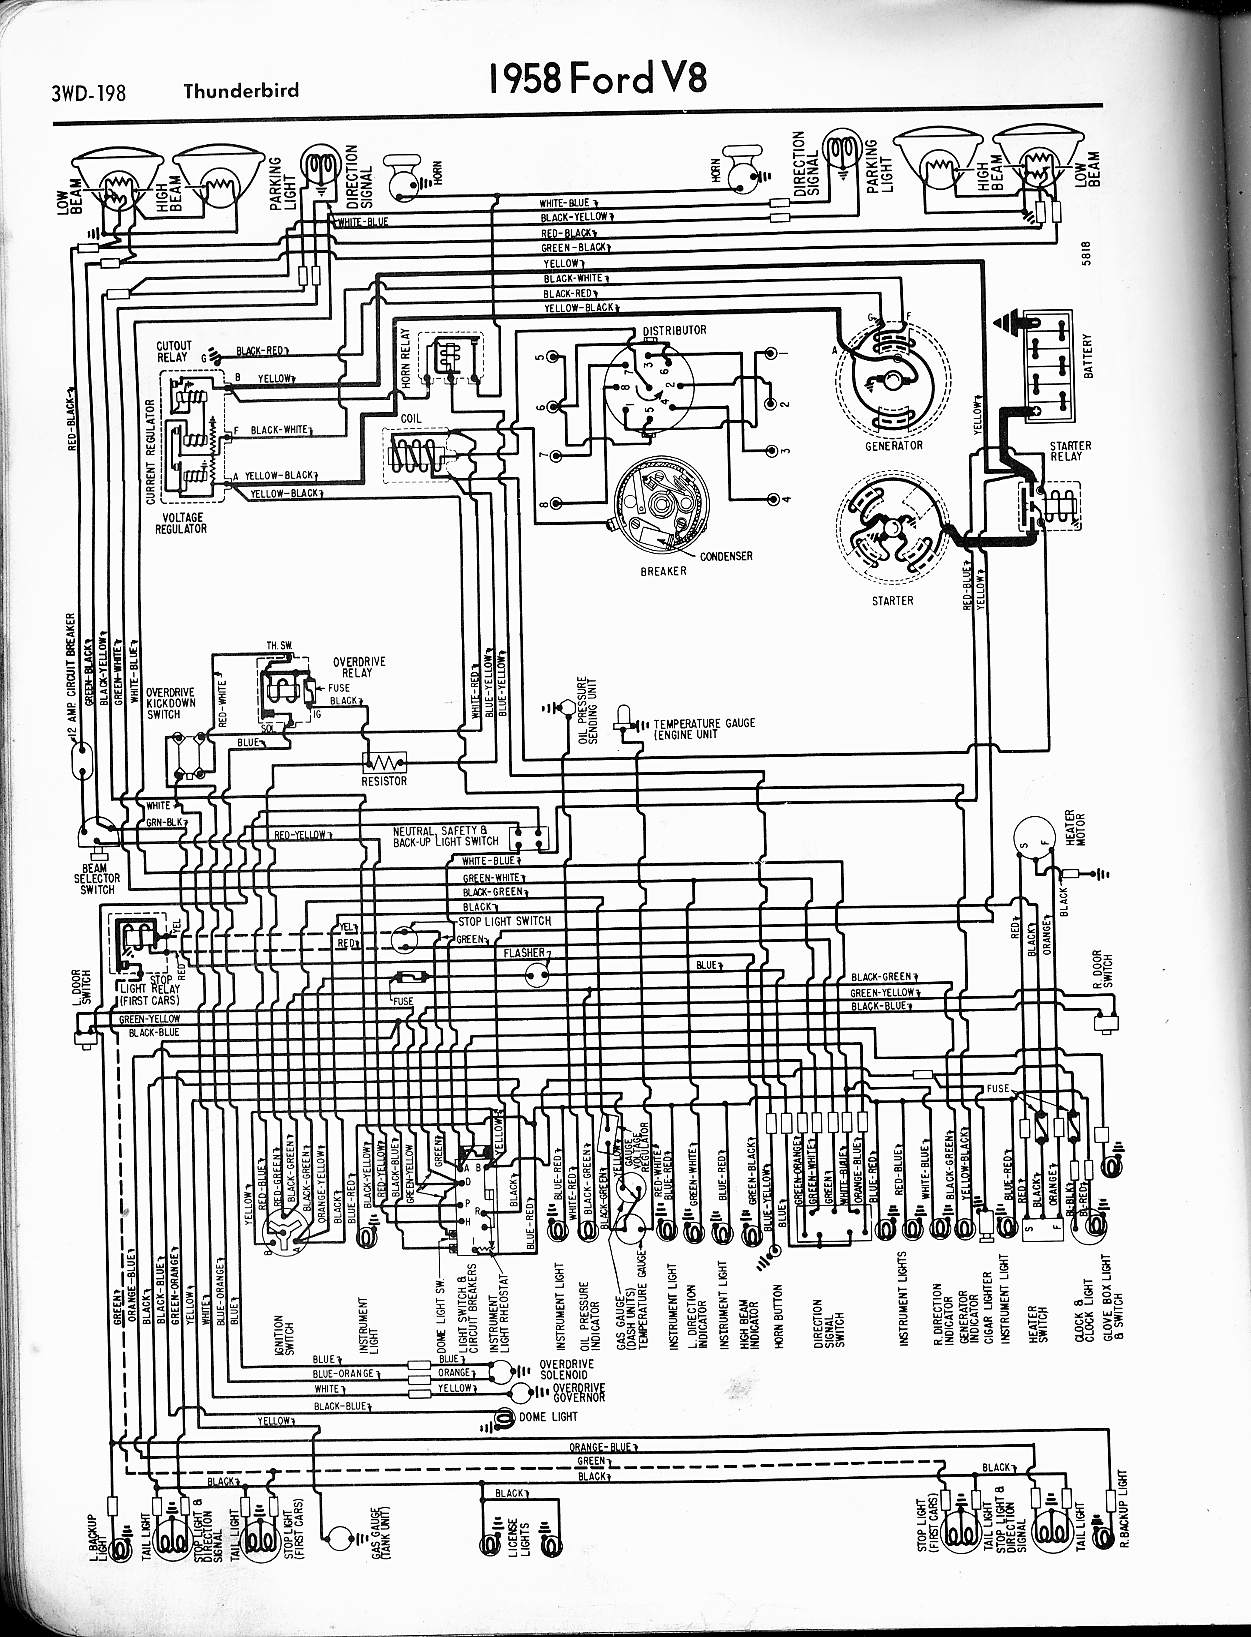 7 3 Ford Truck Wiring Diagram | Wiring Liry Obc Wiring Diagram Ranger on